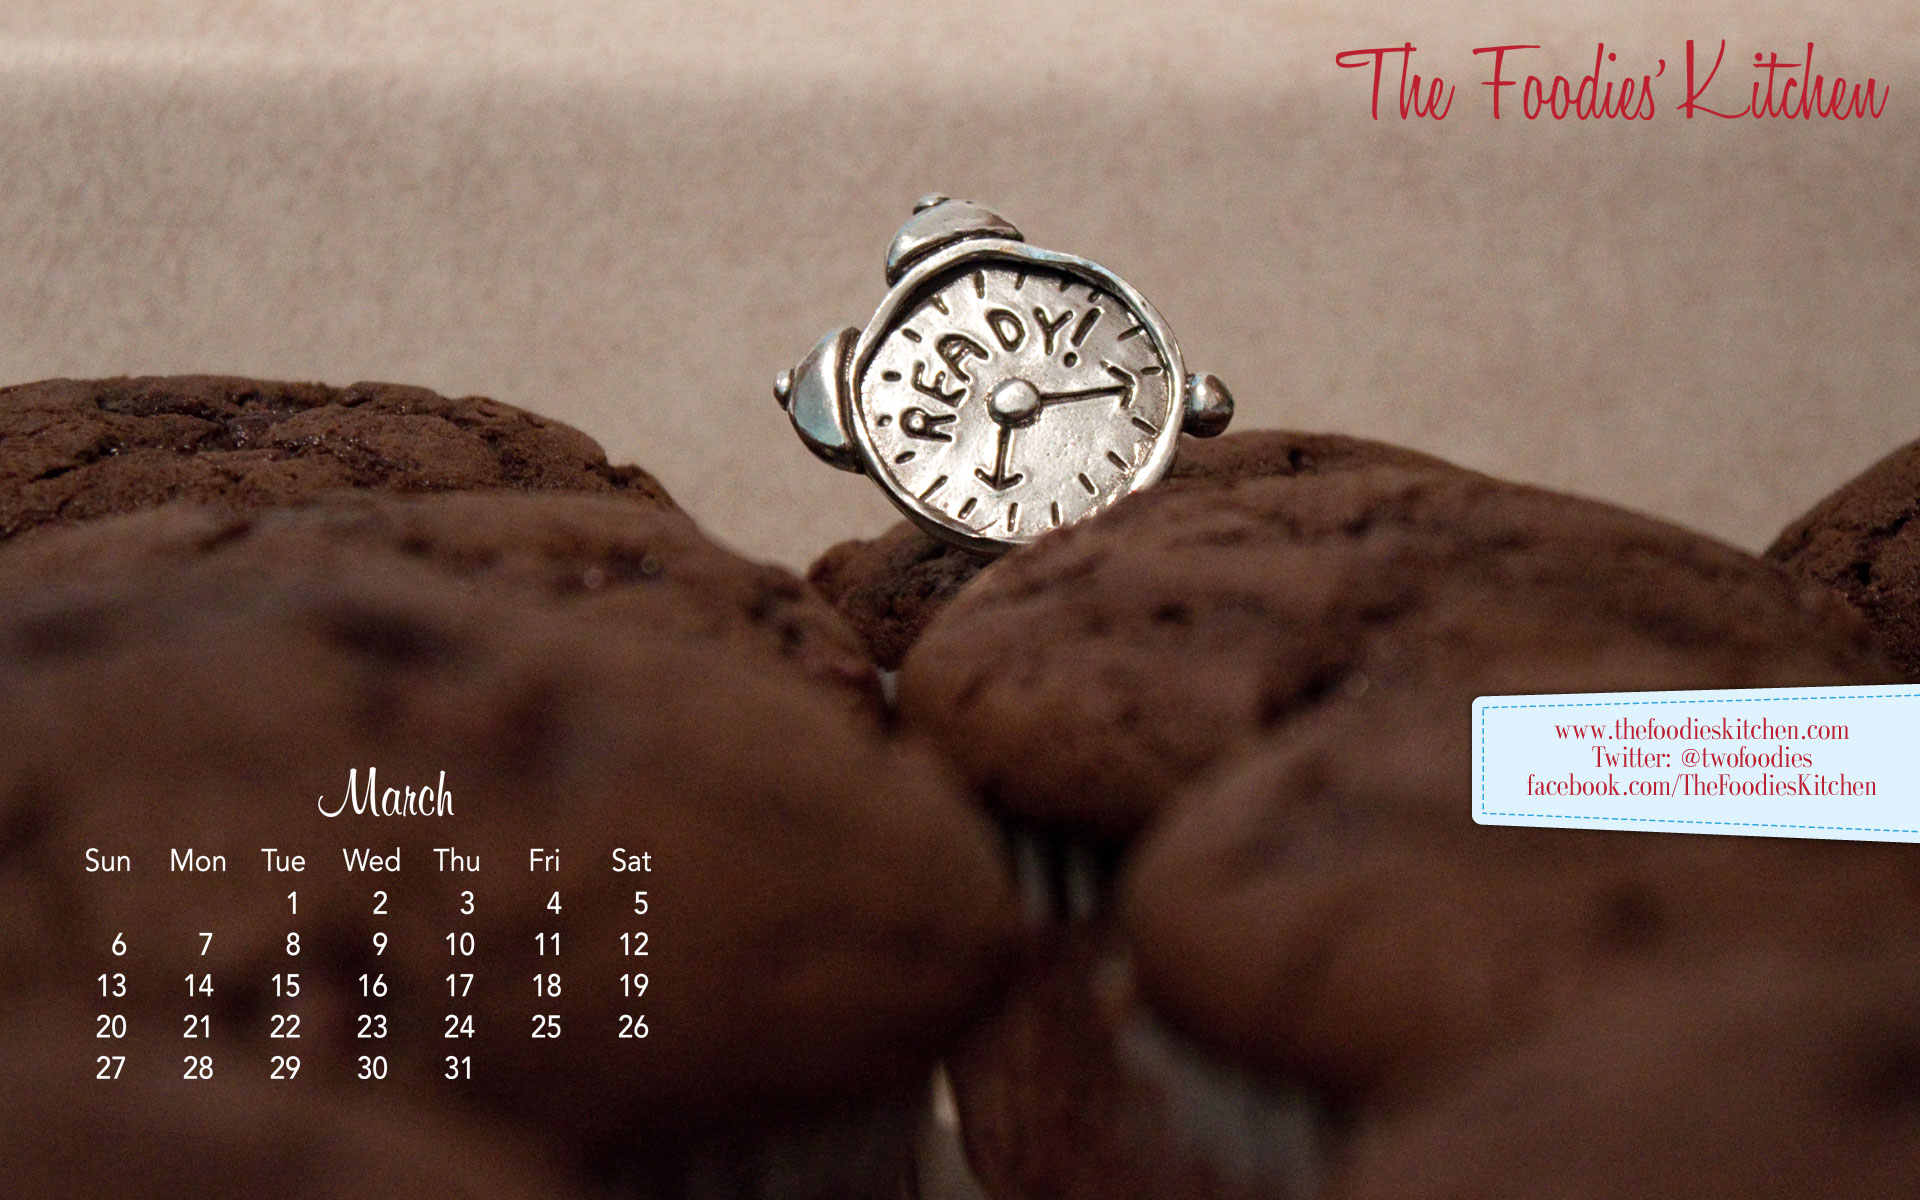 Foodies Freebie: March 2011 Desktop Calendar